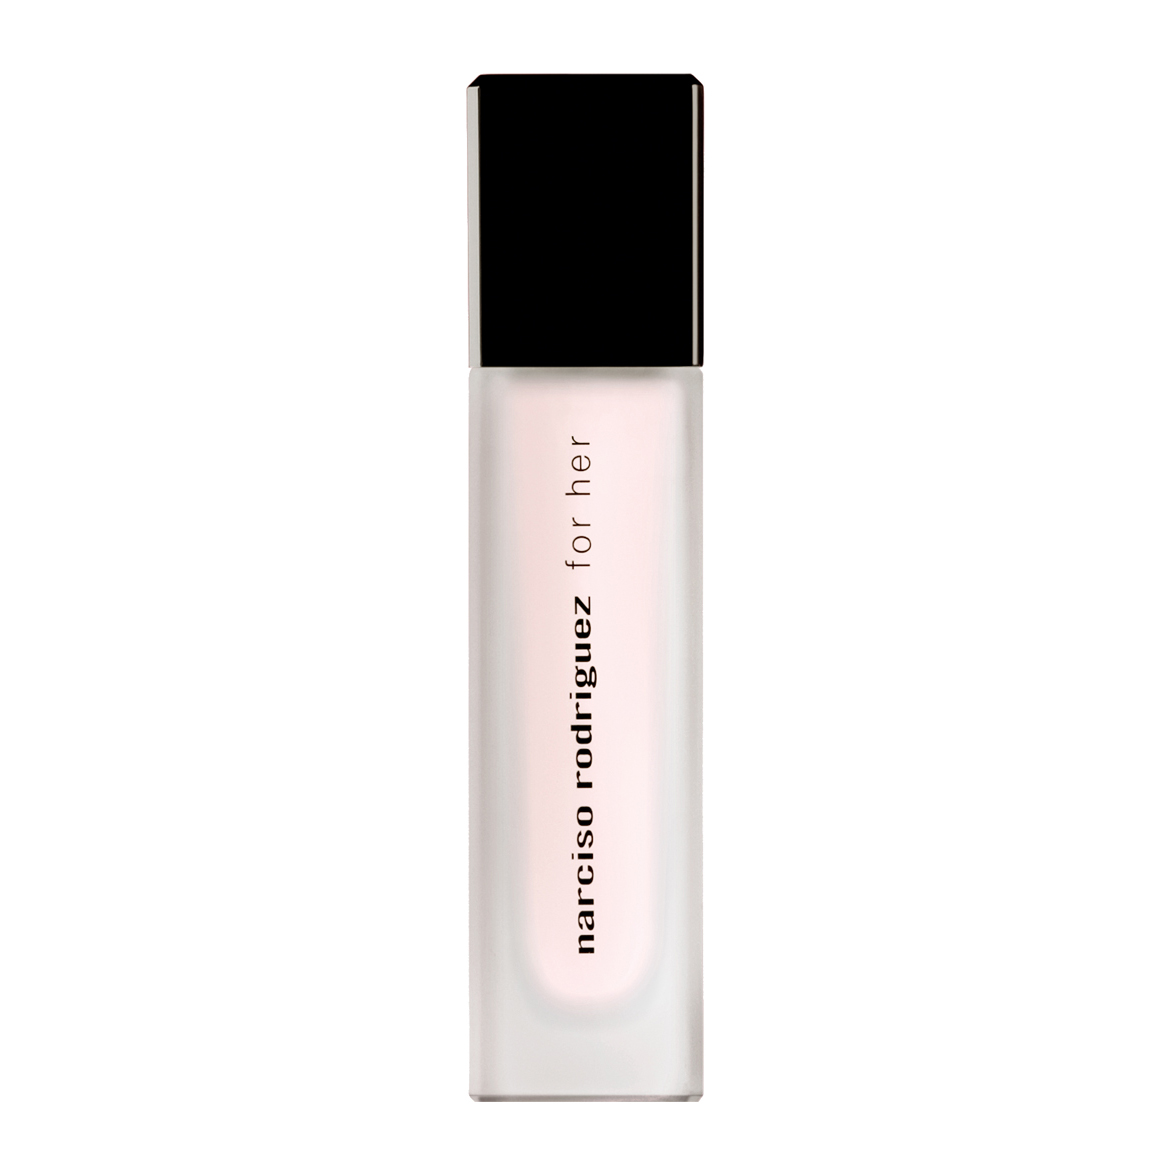 Narciso Rodriguez For Her Hair Mist, £23.80/AED105.90, Escentual